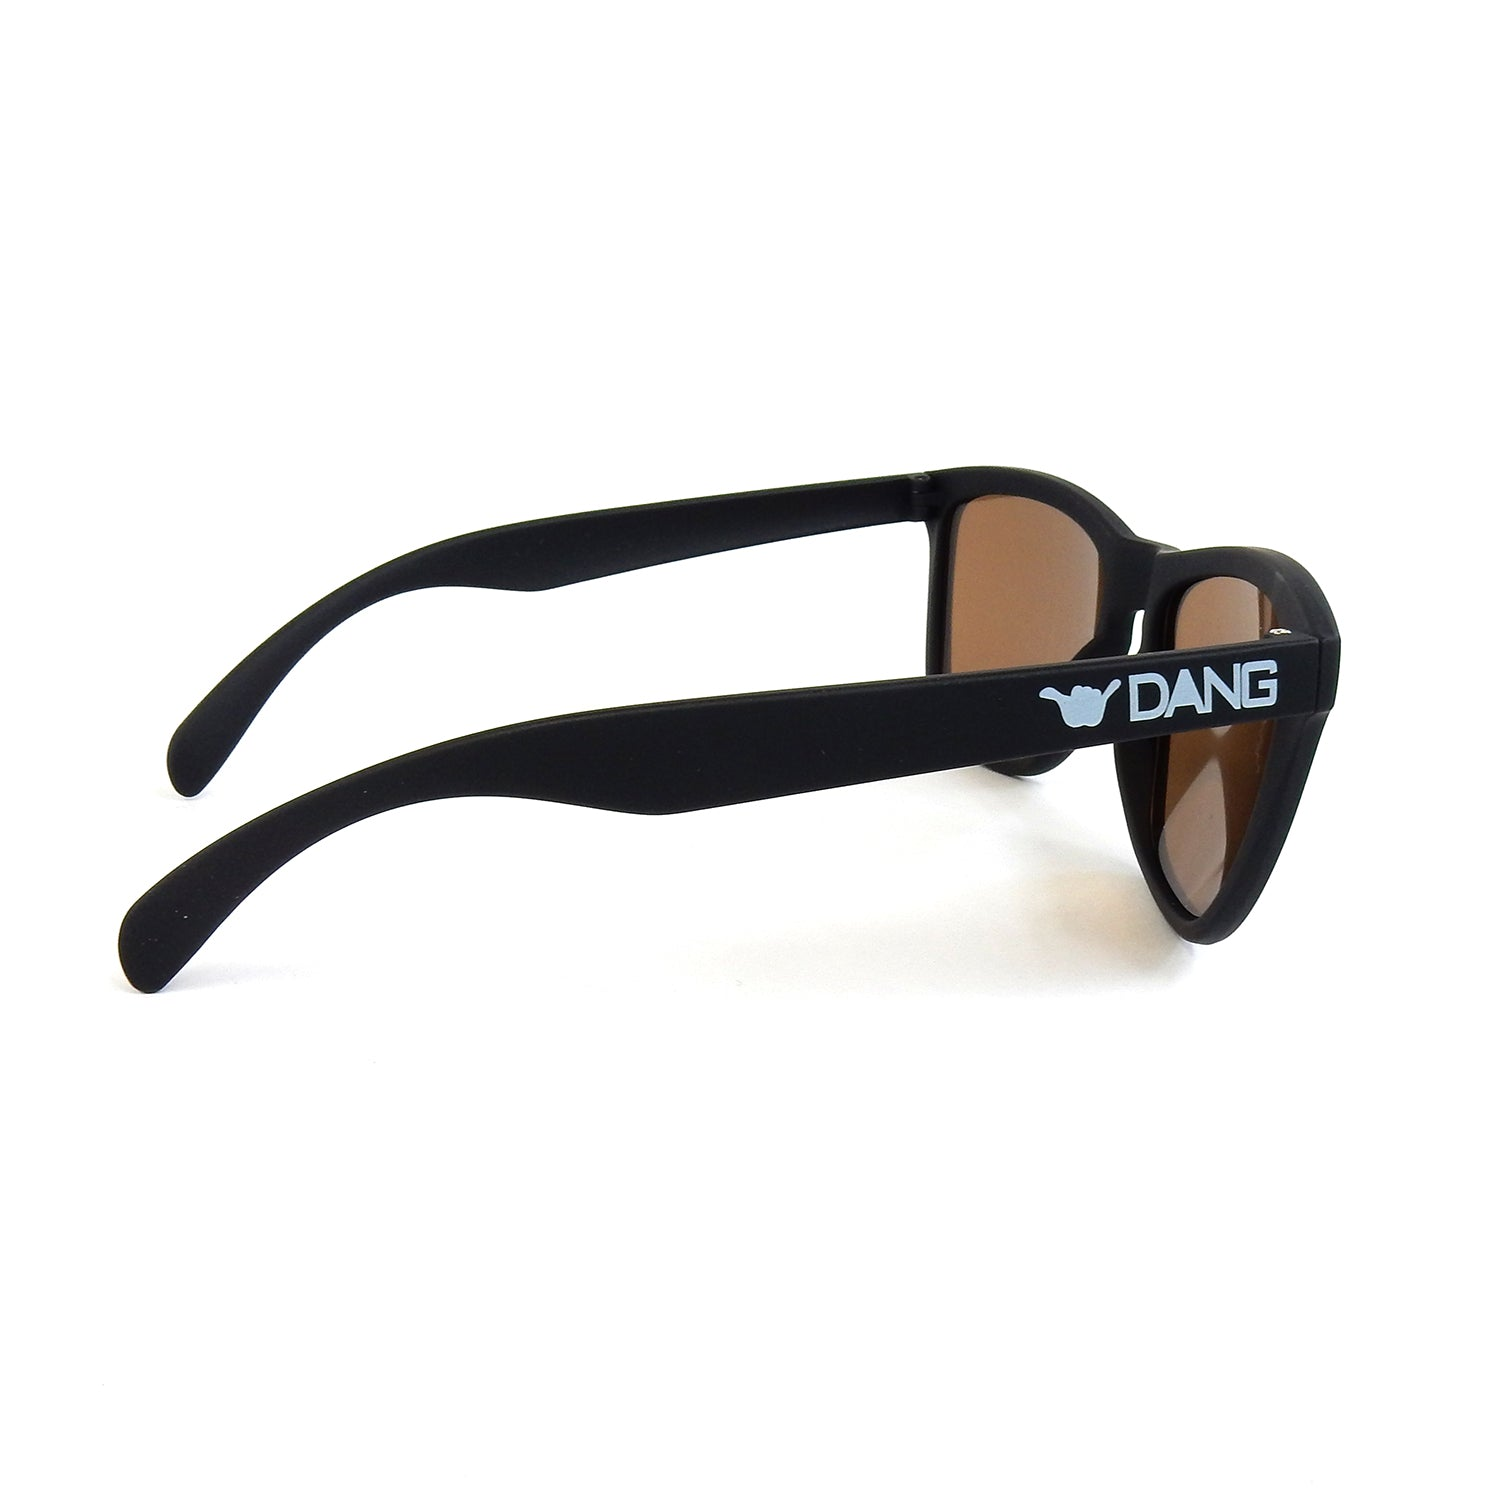 ORIGINAL Black Soft X Bronze Mirror Polarized with ONE HANG LOOSE [DANGSHADES 10th Anv Model]